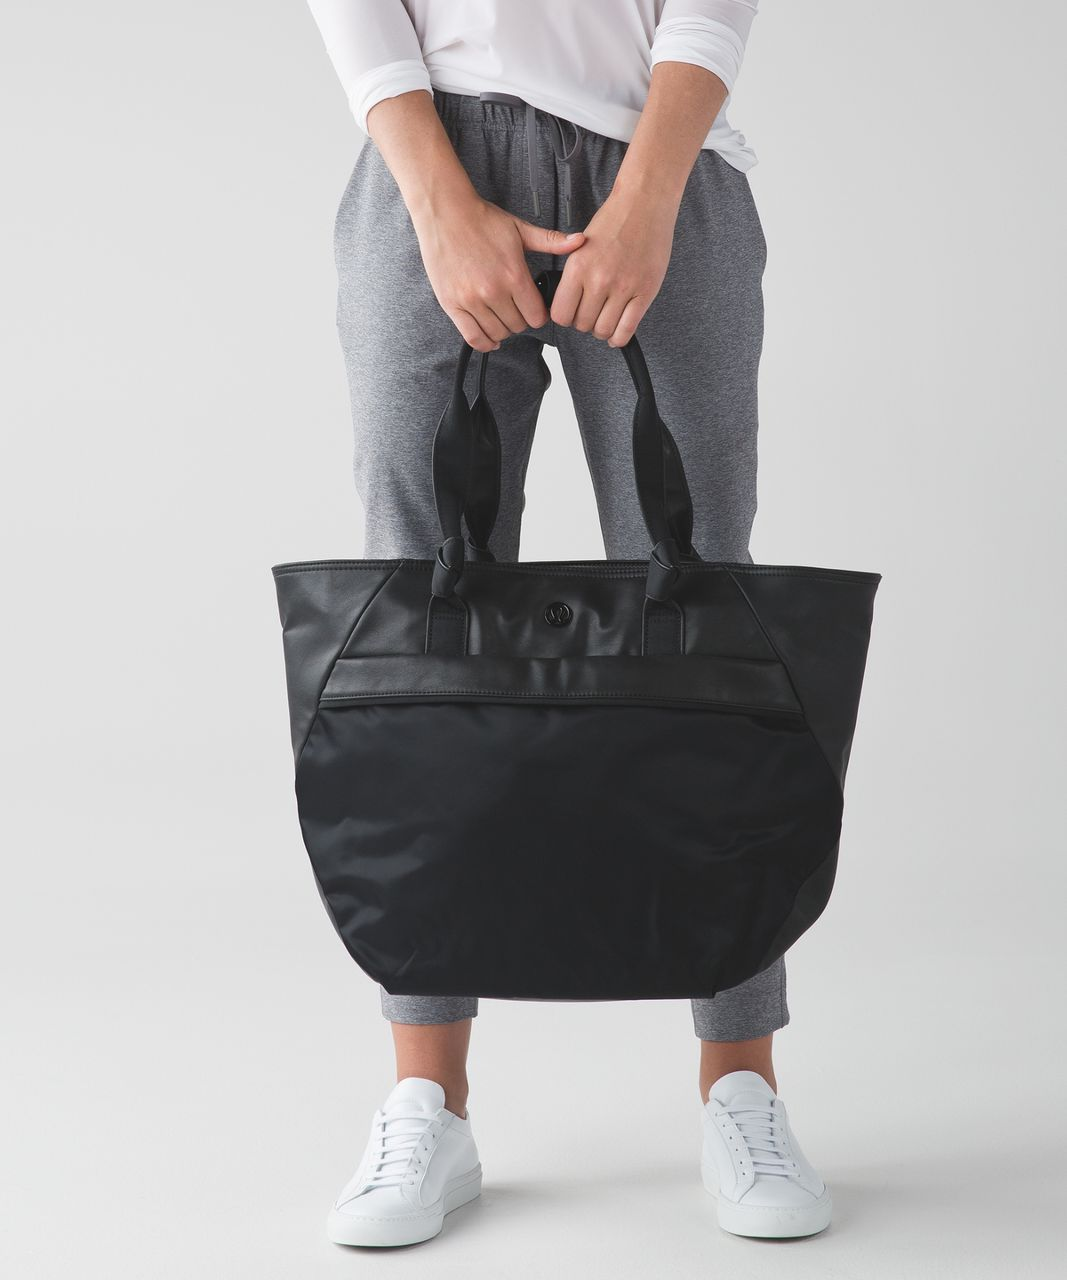 24ff4c641d Lululemon Everything Bag - Black - lulu fanatics